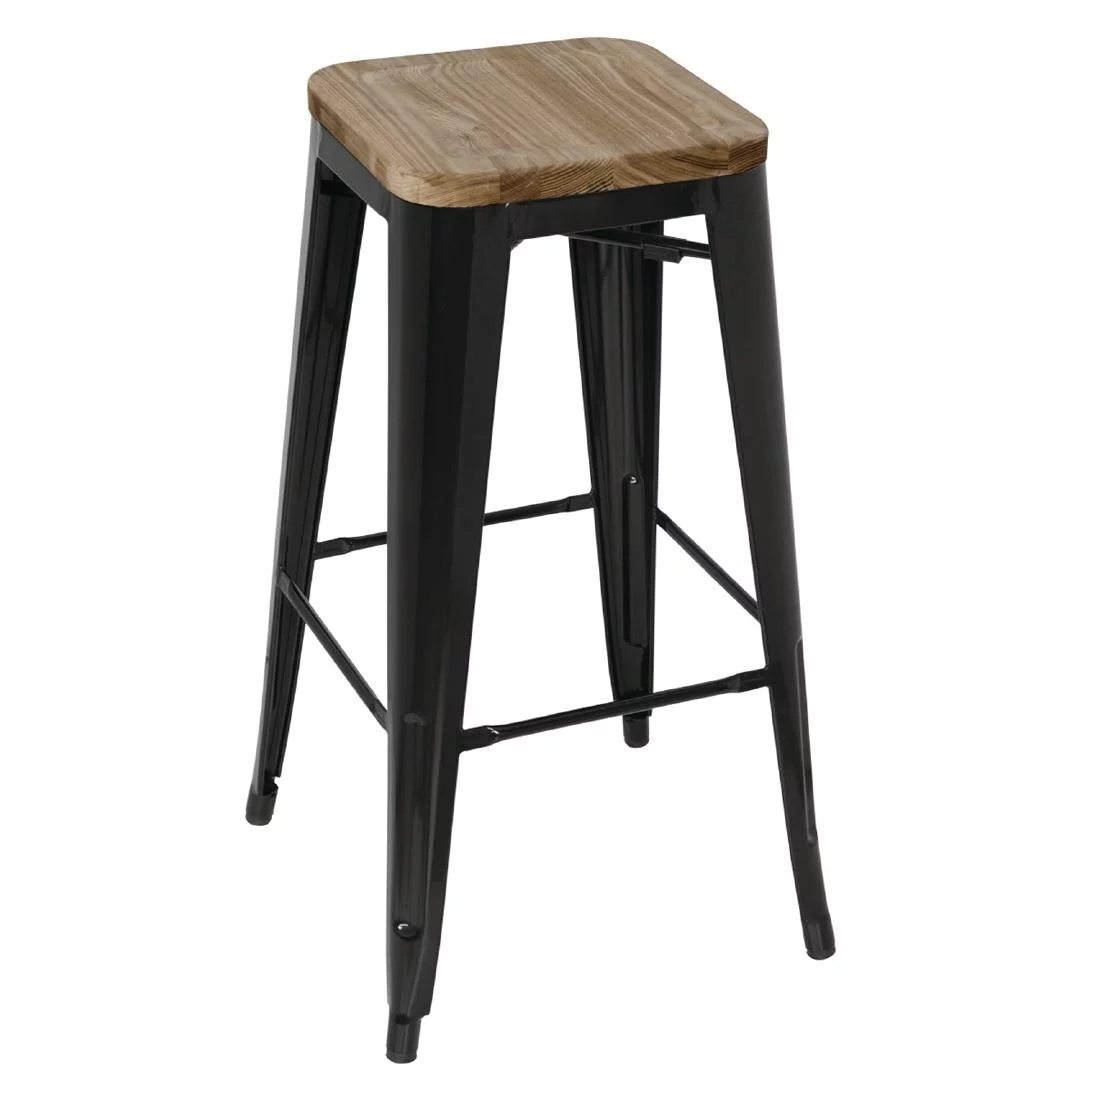 Harbour Stool with Timber Seat